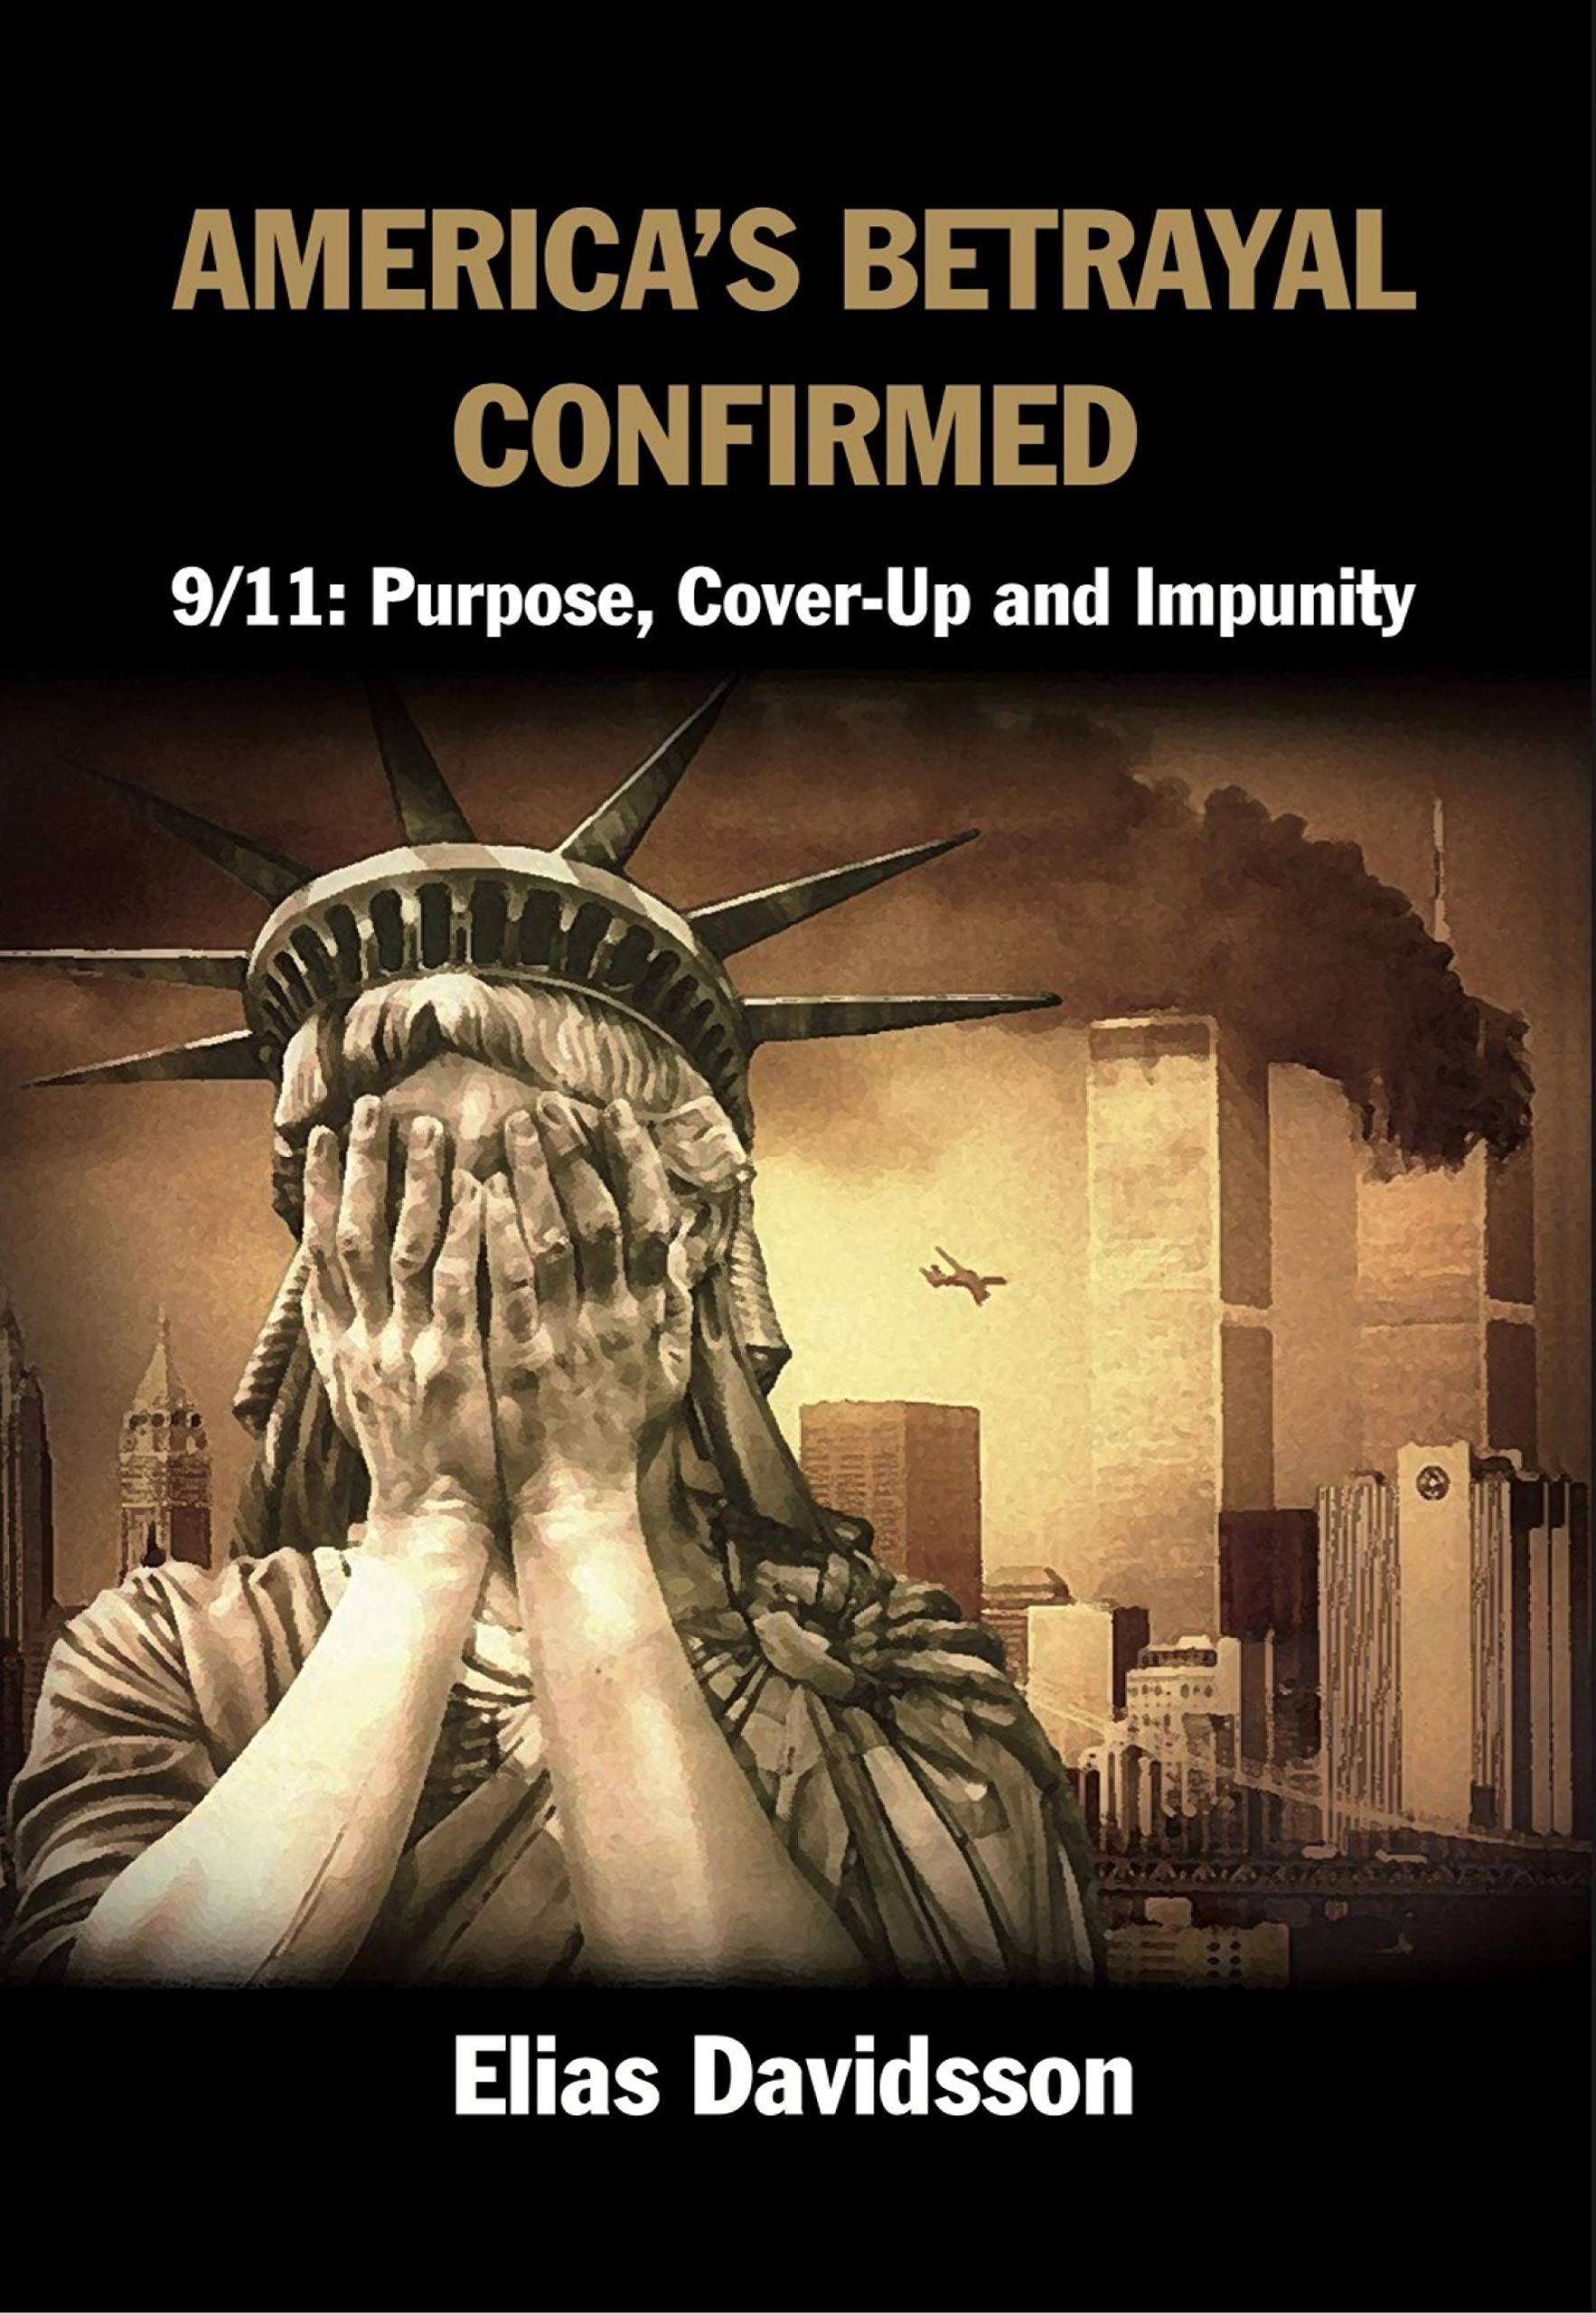 America's Betrayal Confirmed: 9/11: Purpose, Cover-Up and Impunity